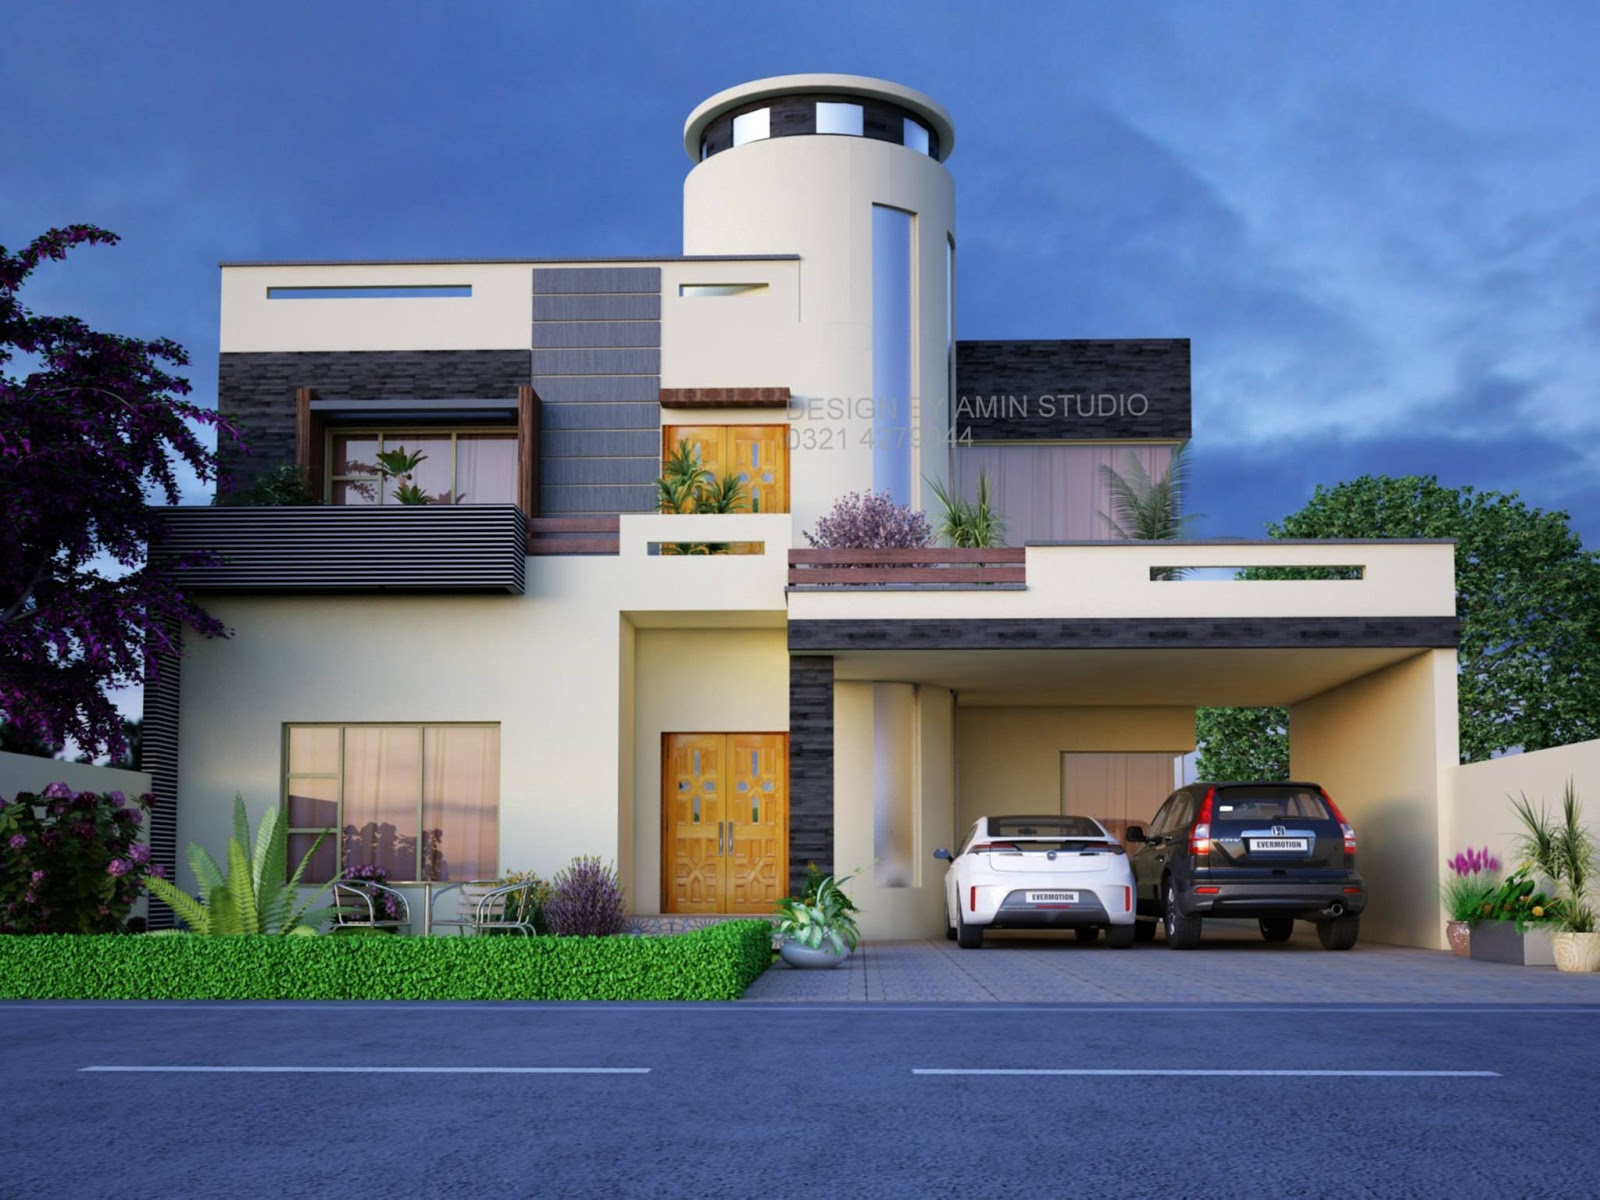 House design karachi - One Kanal House Design Pakistan